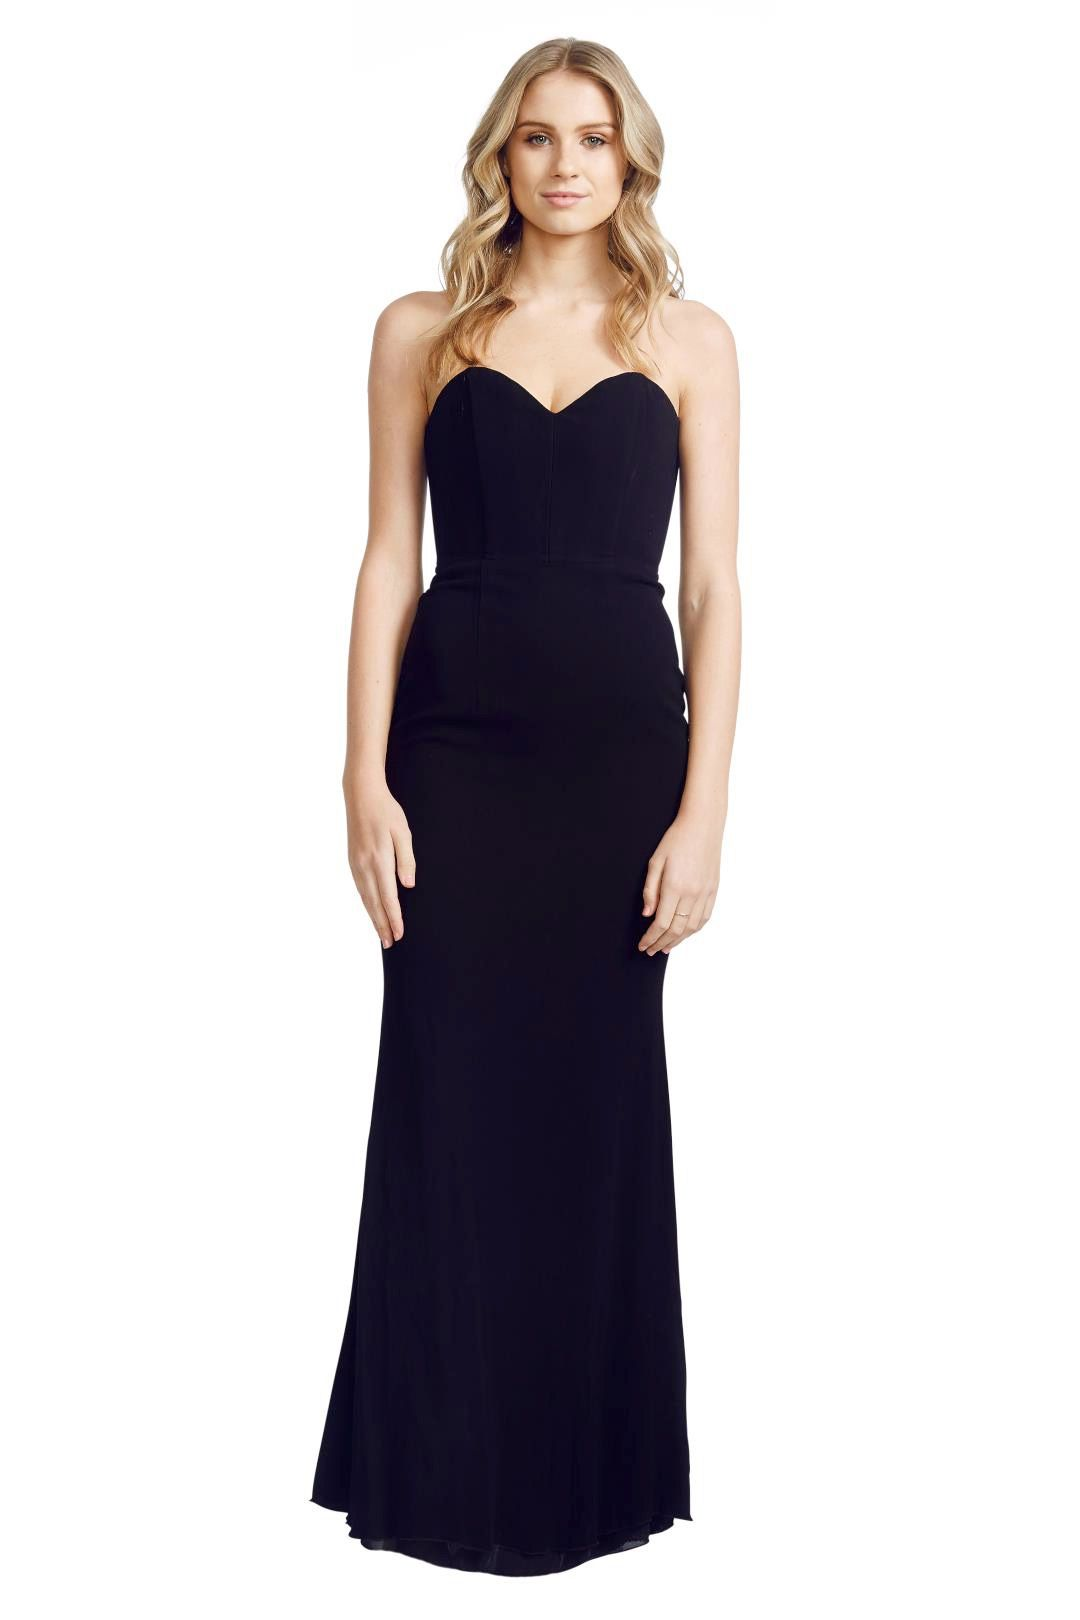 Alex Perry - Louise Gown - Black - Front